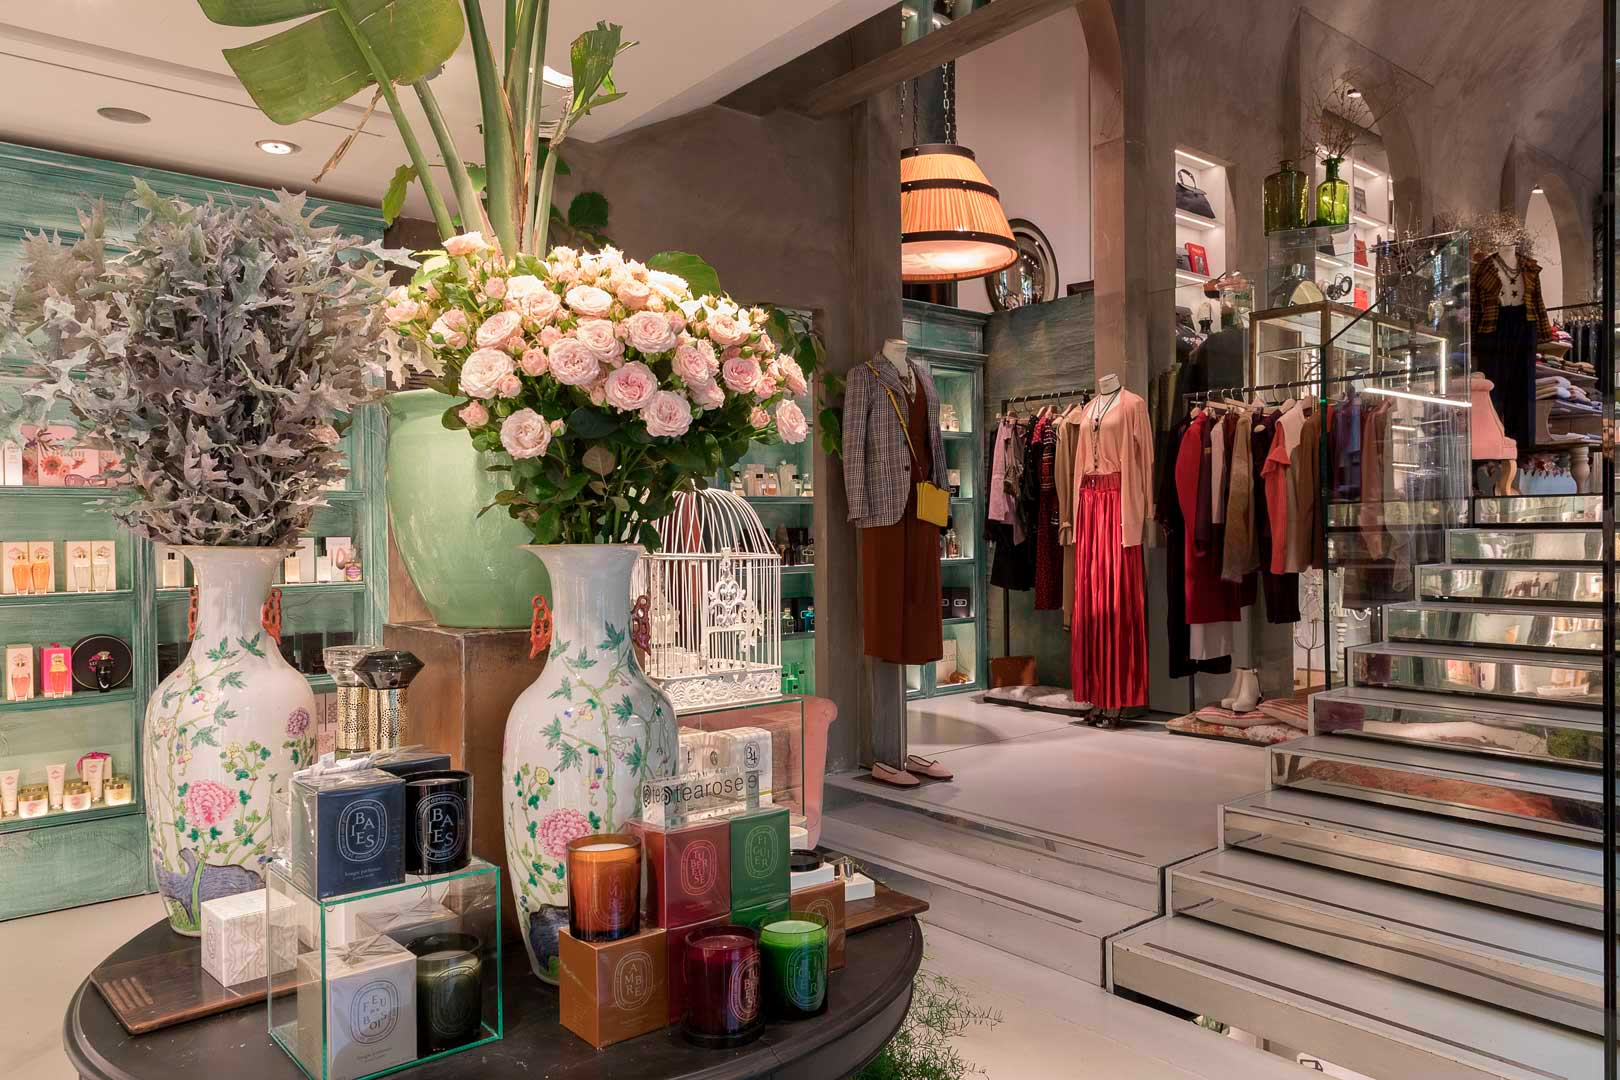 Negozi Di Design A Milano the 5 most beautiful rose shops in milan | flawless milano